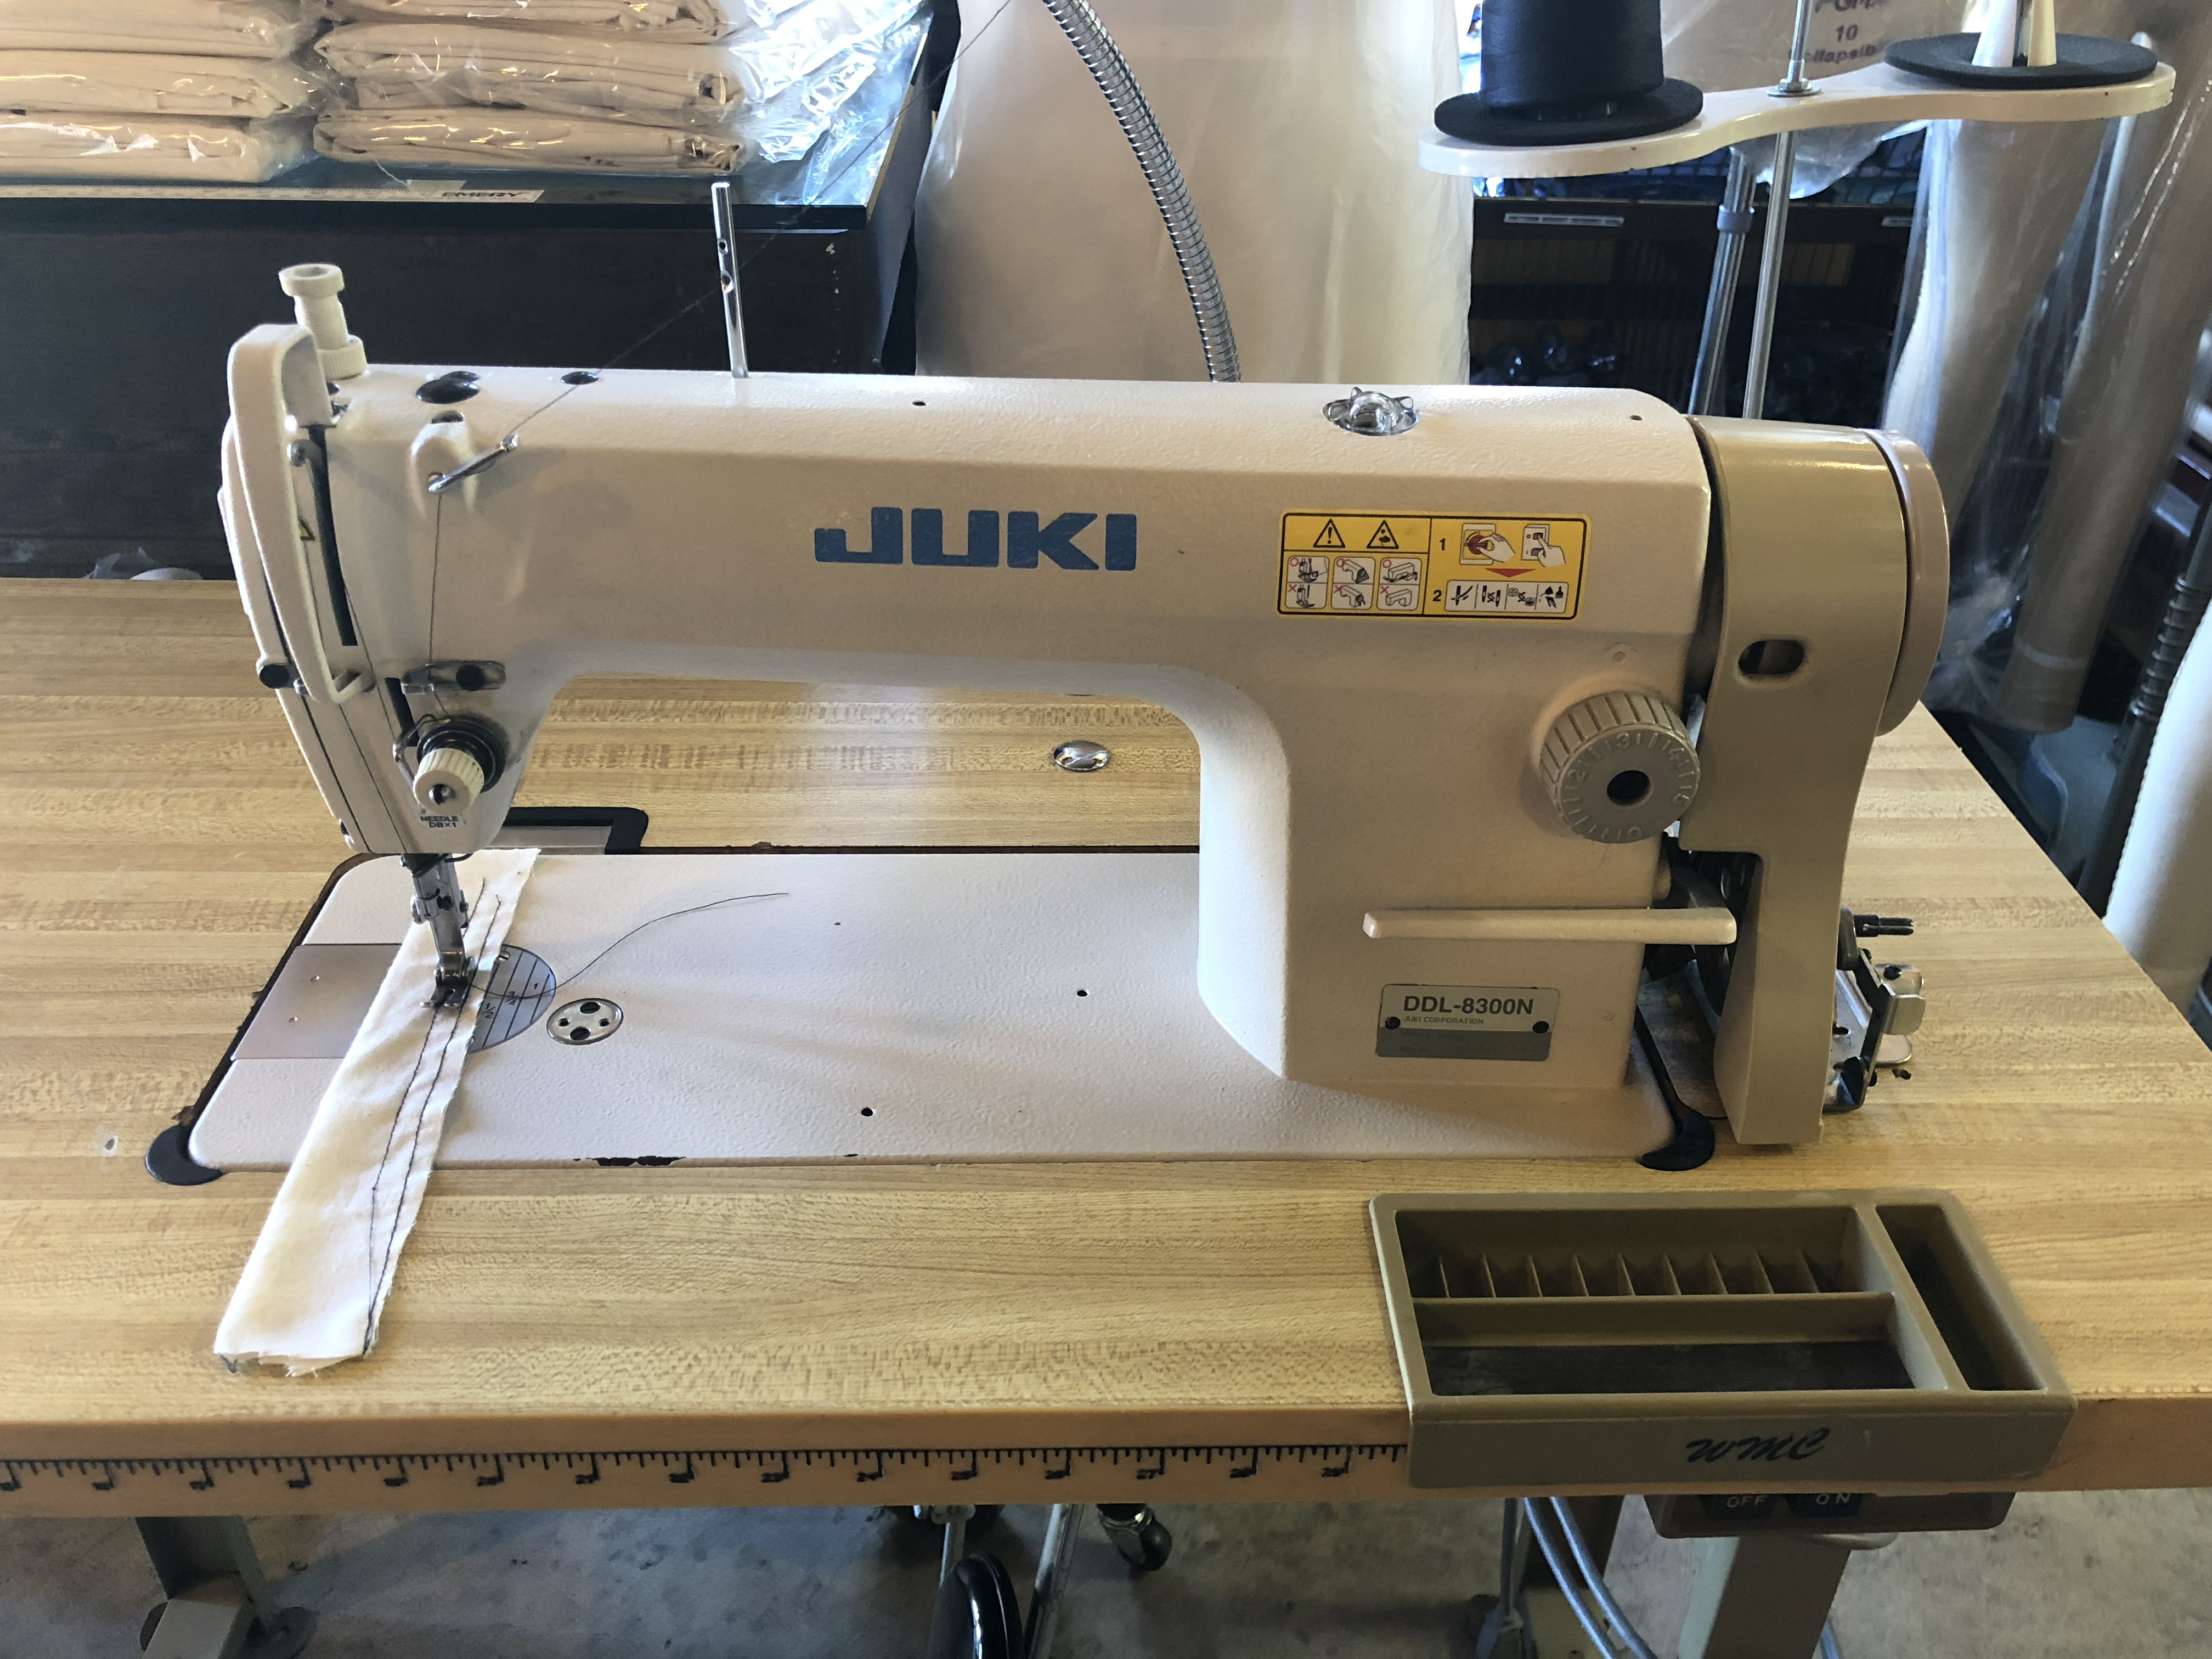 Juki DDL-8300N Single Needle Sewing Machine - Commercial